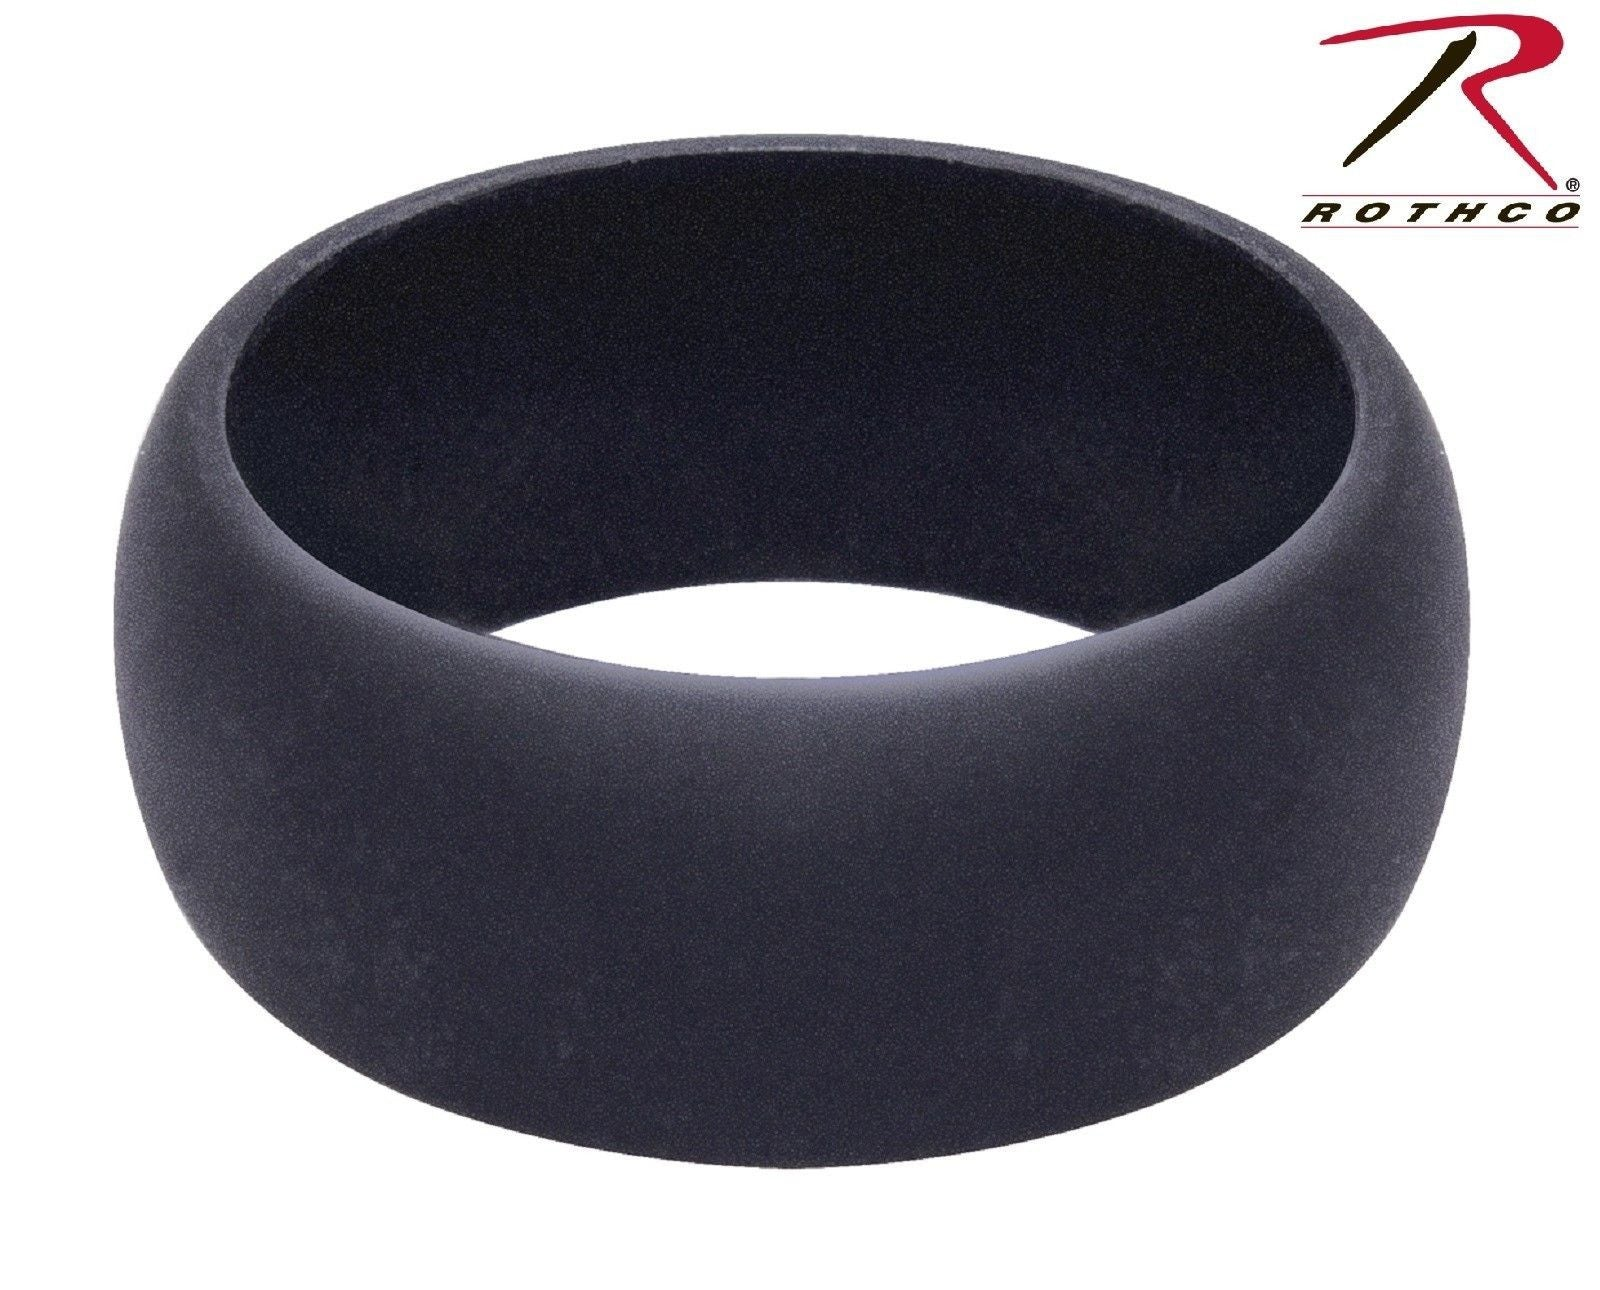 rothco silicone ring mens black silicone wedding band tactical